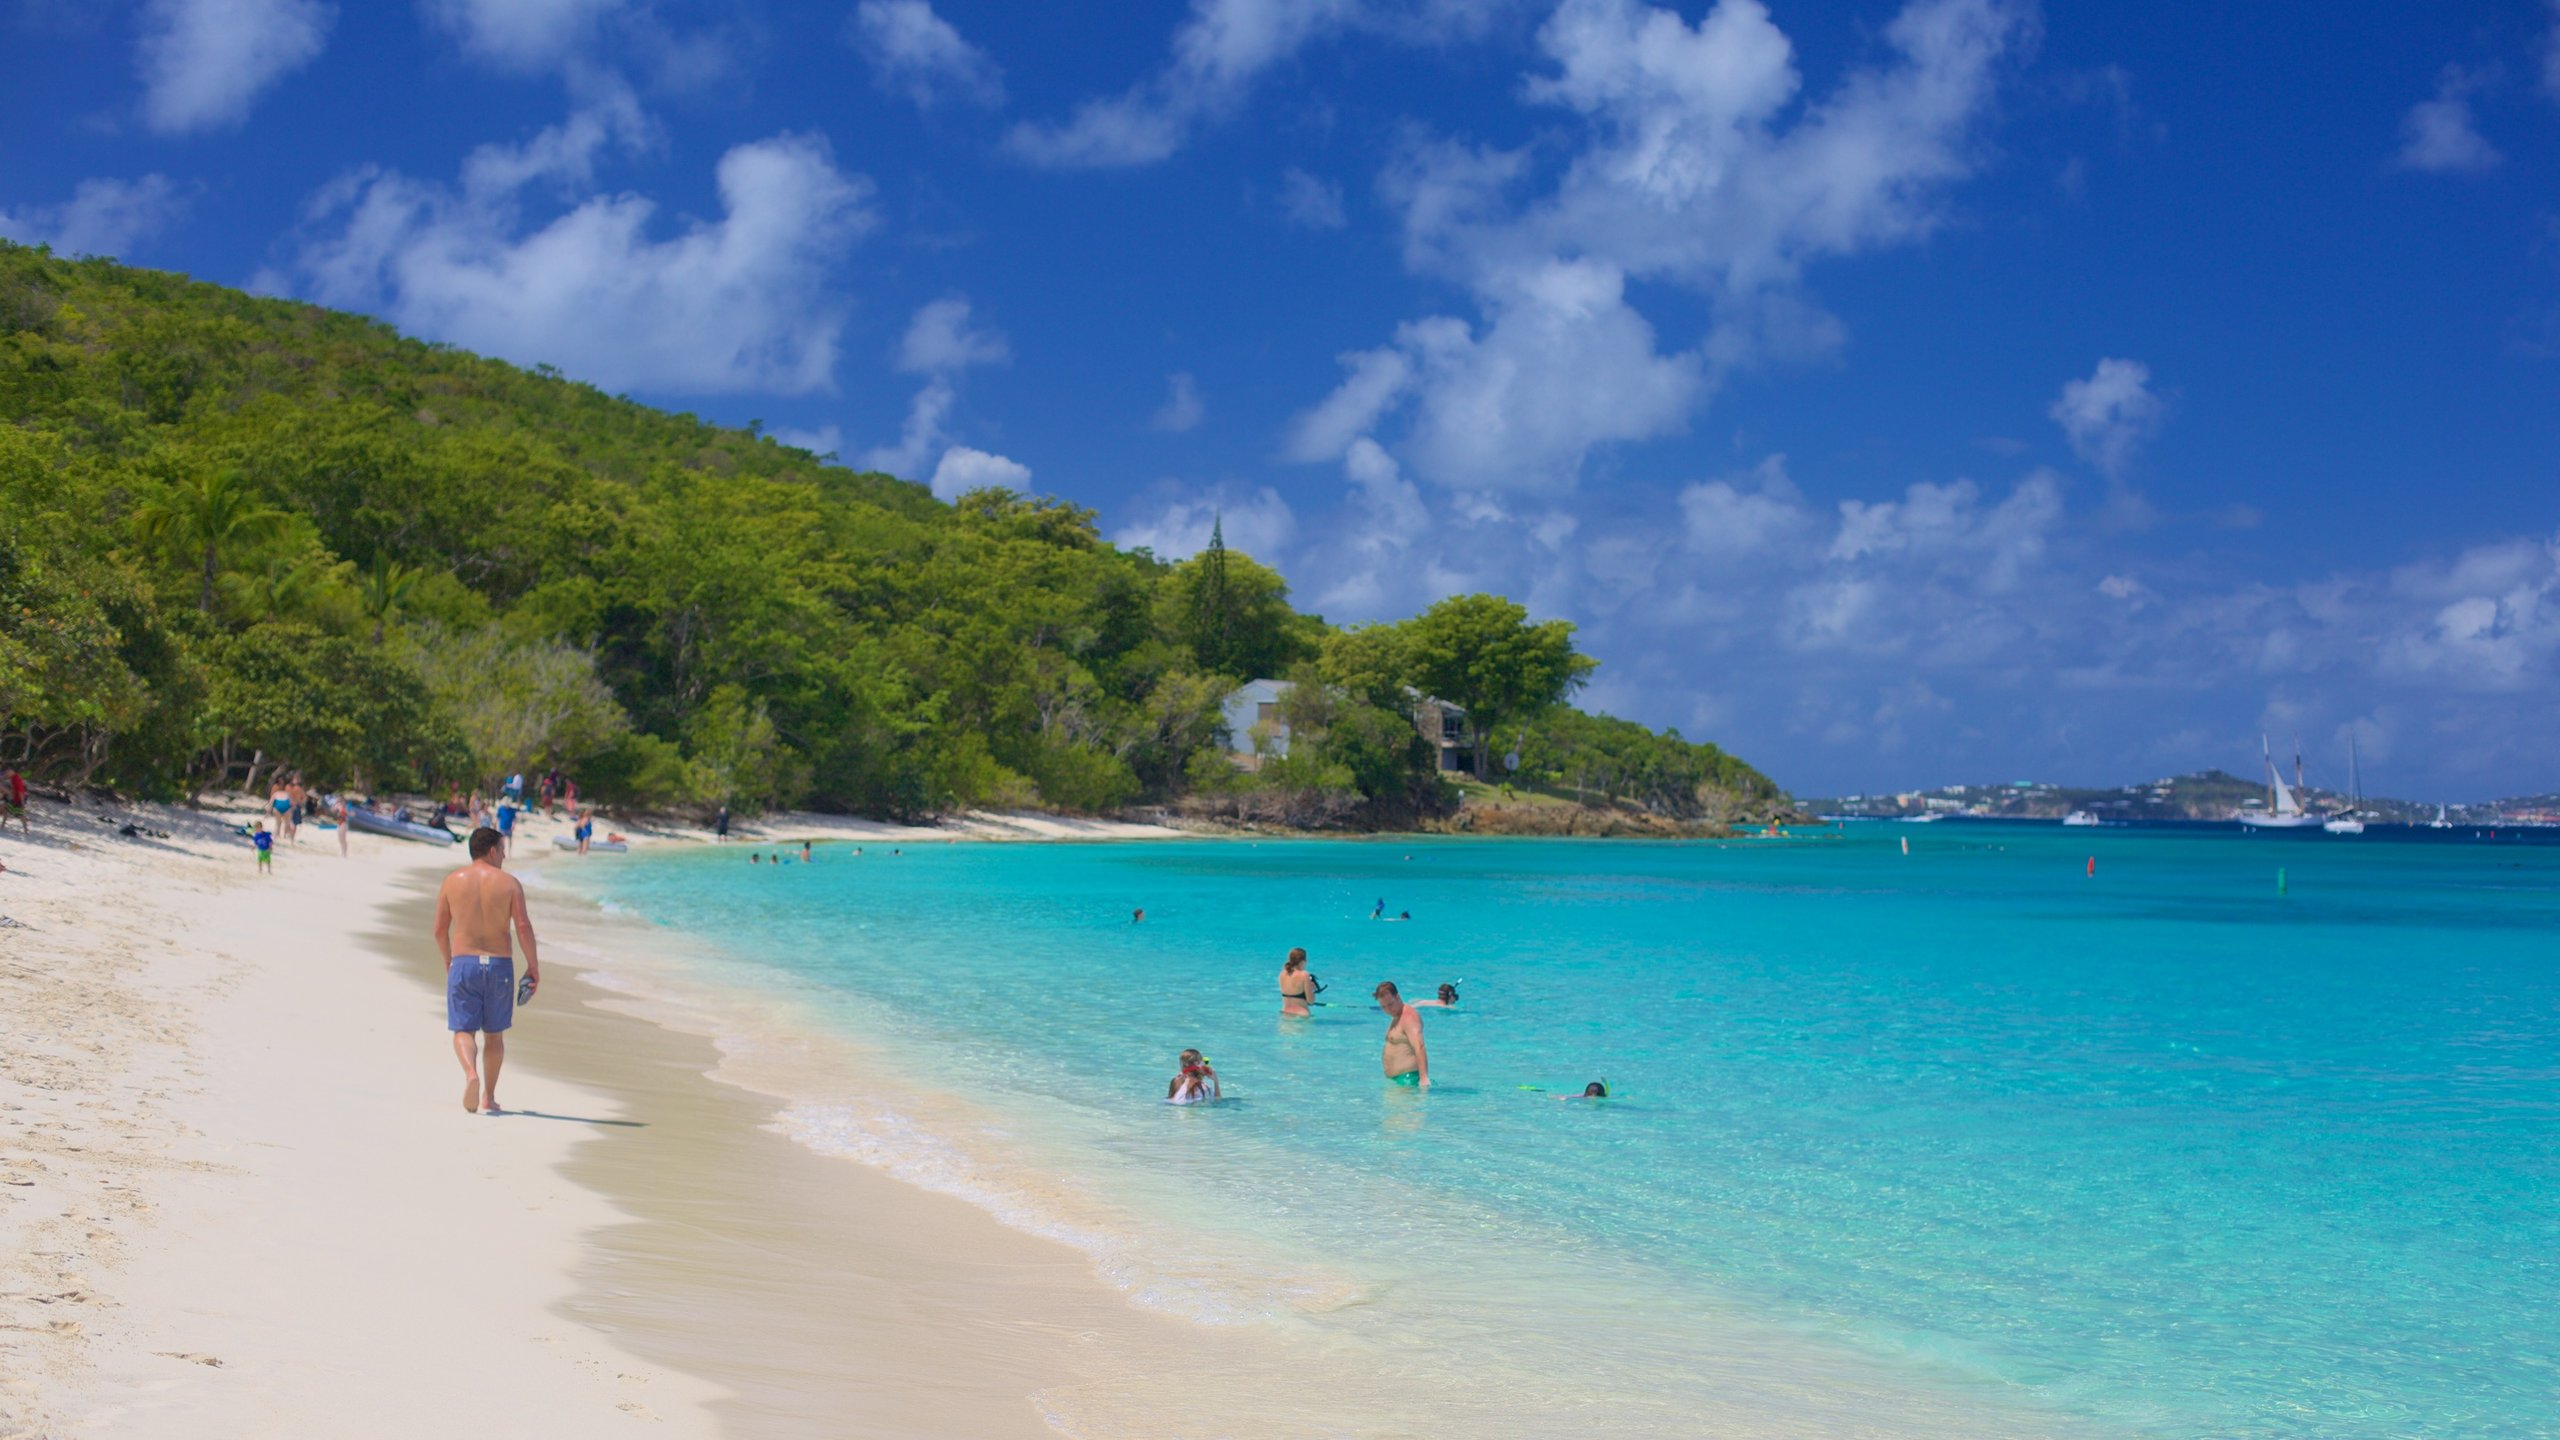 Hike on scenic trails, explore sugar plantation ruins and snorkel along an underwater trail in this pristine nature park, which covers much of St. John.